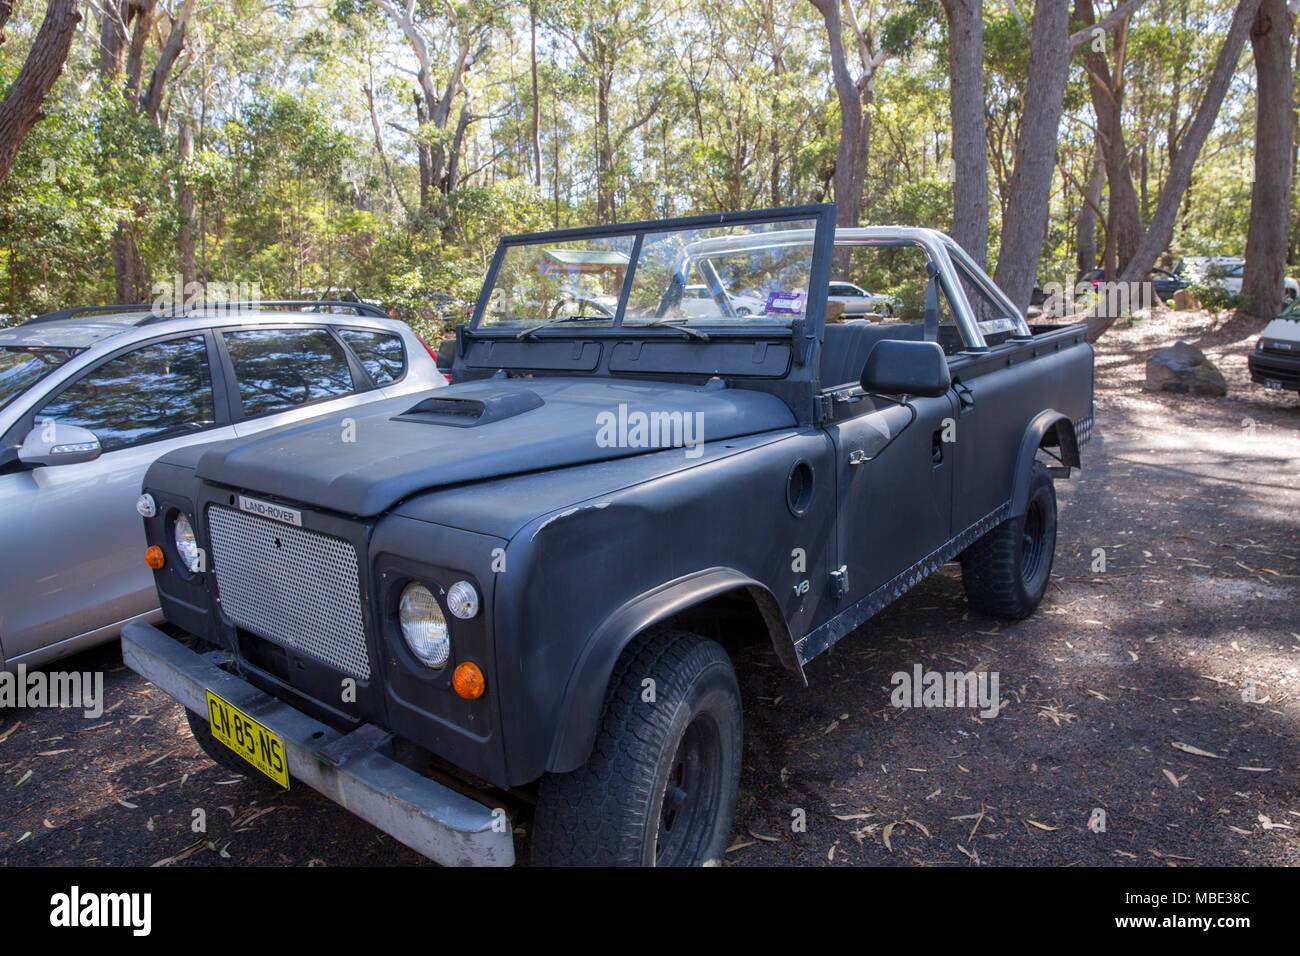 Convertible soft top land rover defender parked in Australia - Stock Image